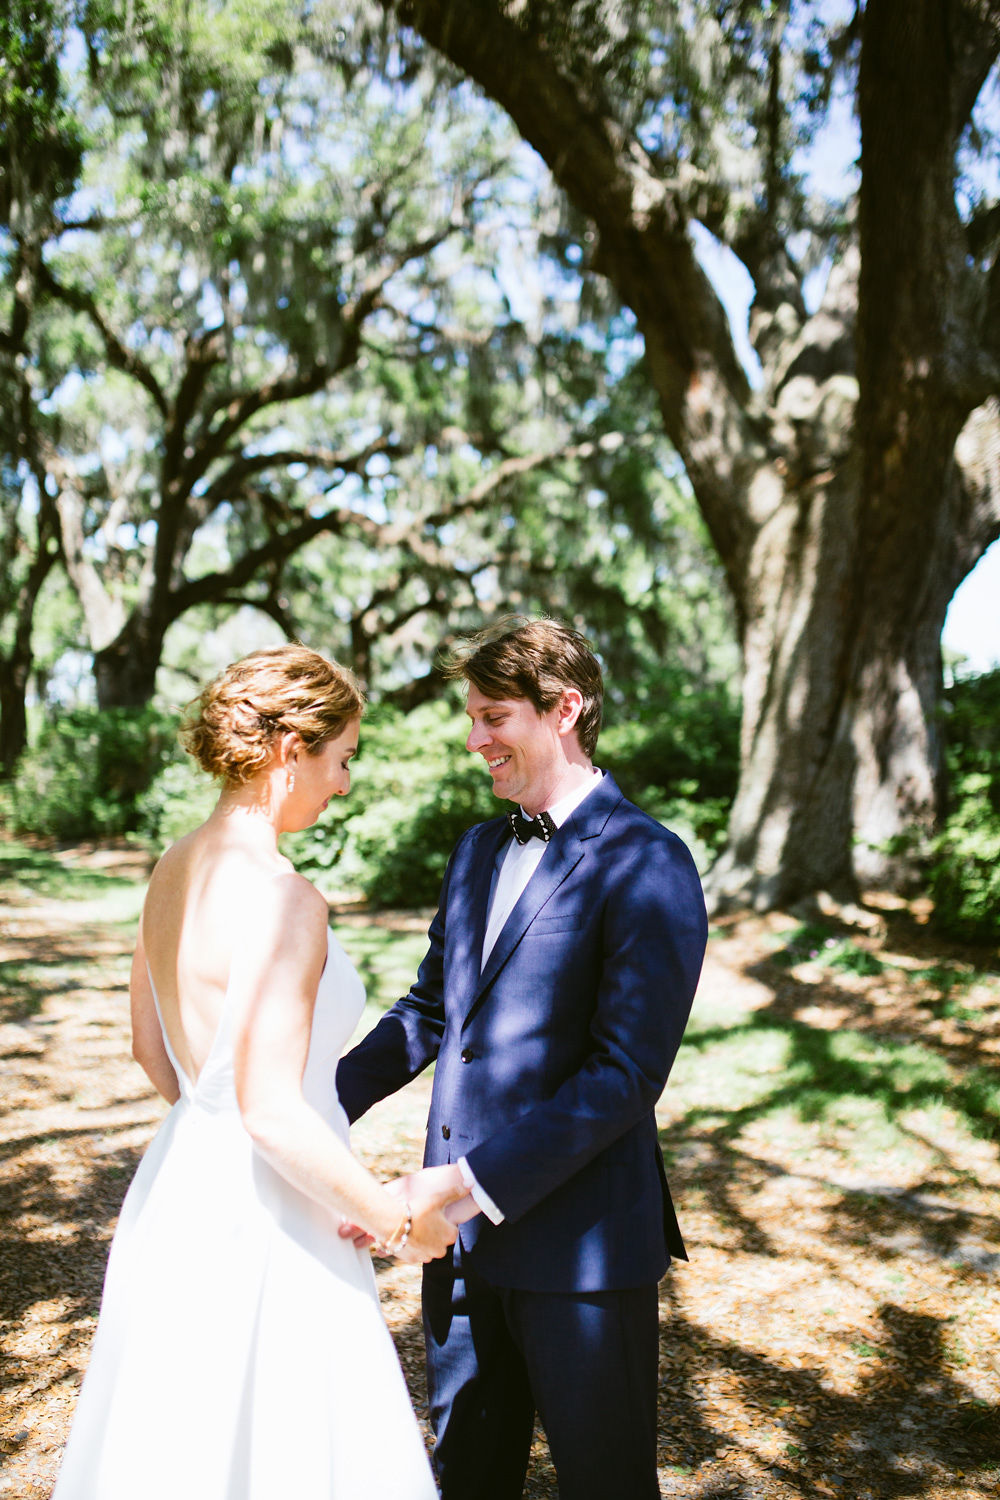 Edisto Island Wedding at Cypress Trees Plantation - Charleston Destination Luxury Wedding Planner - Scarlet Plan & Design (13).jpg